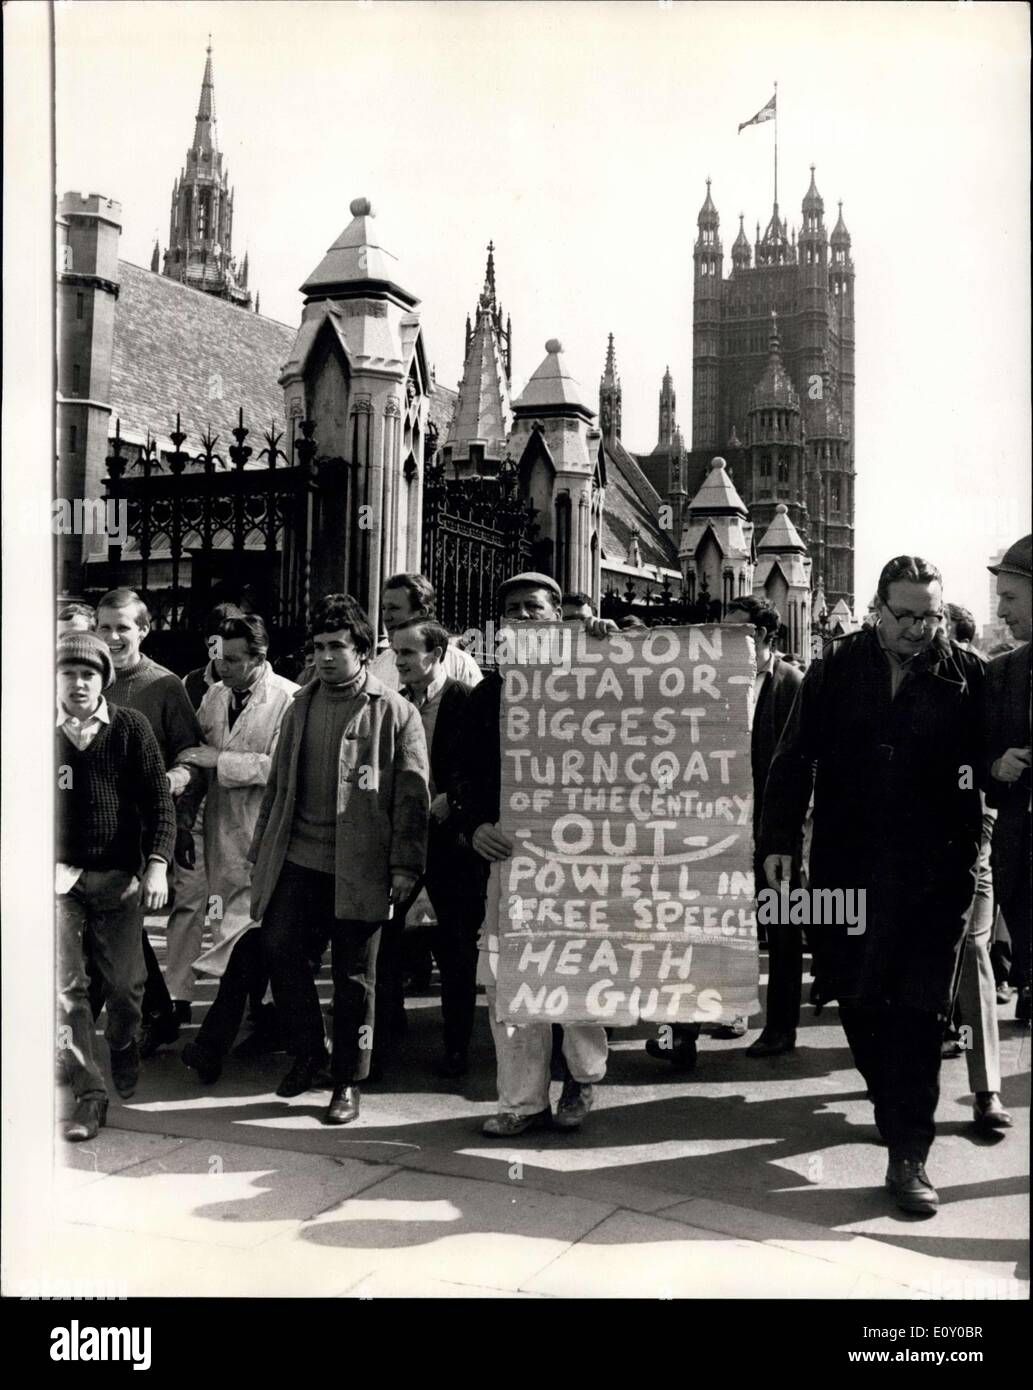 Apr. 24, 1968 - Smithefirld Porters March To Westminster: About four hundred porters from Smithfield most market, today marched - Stock Image